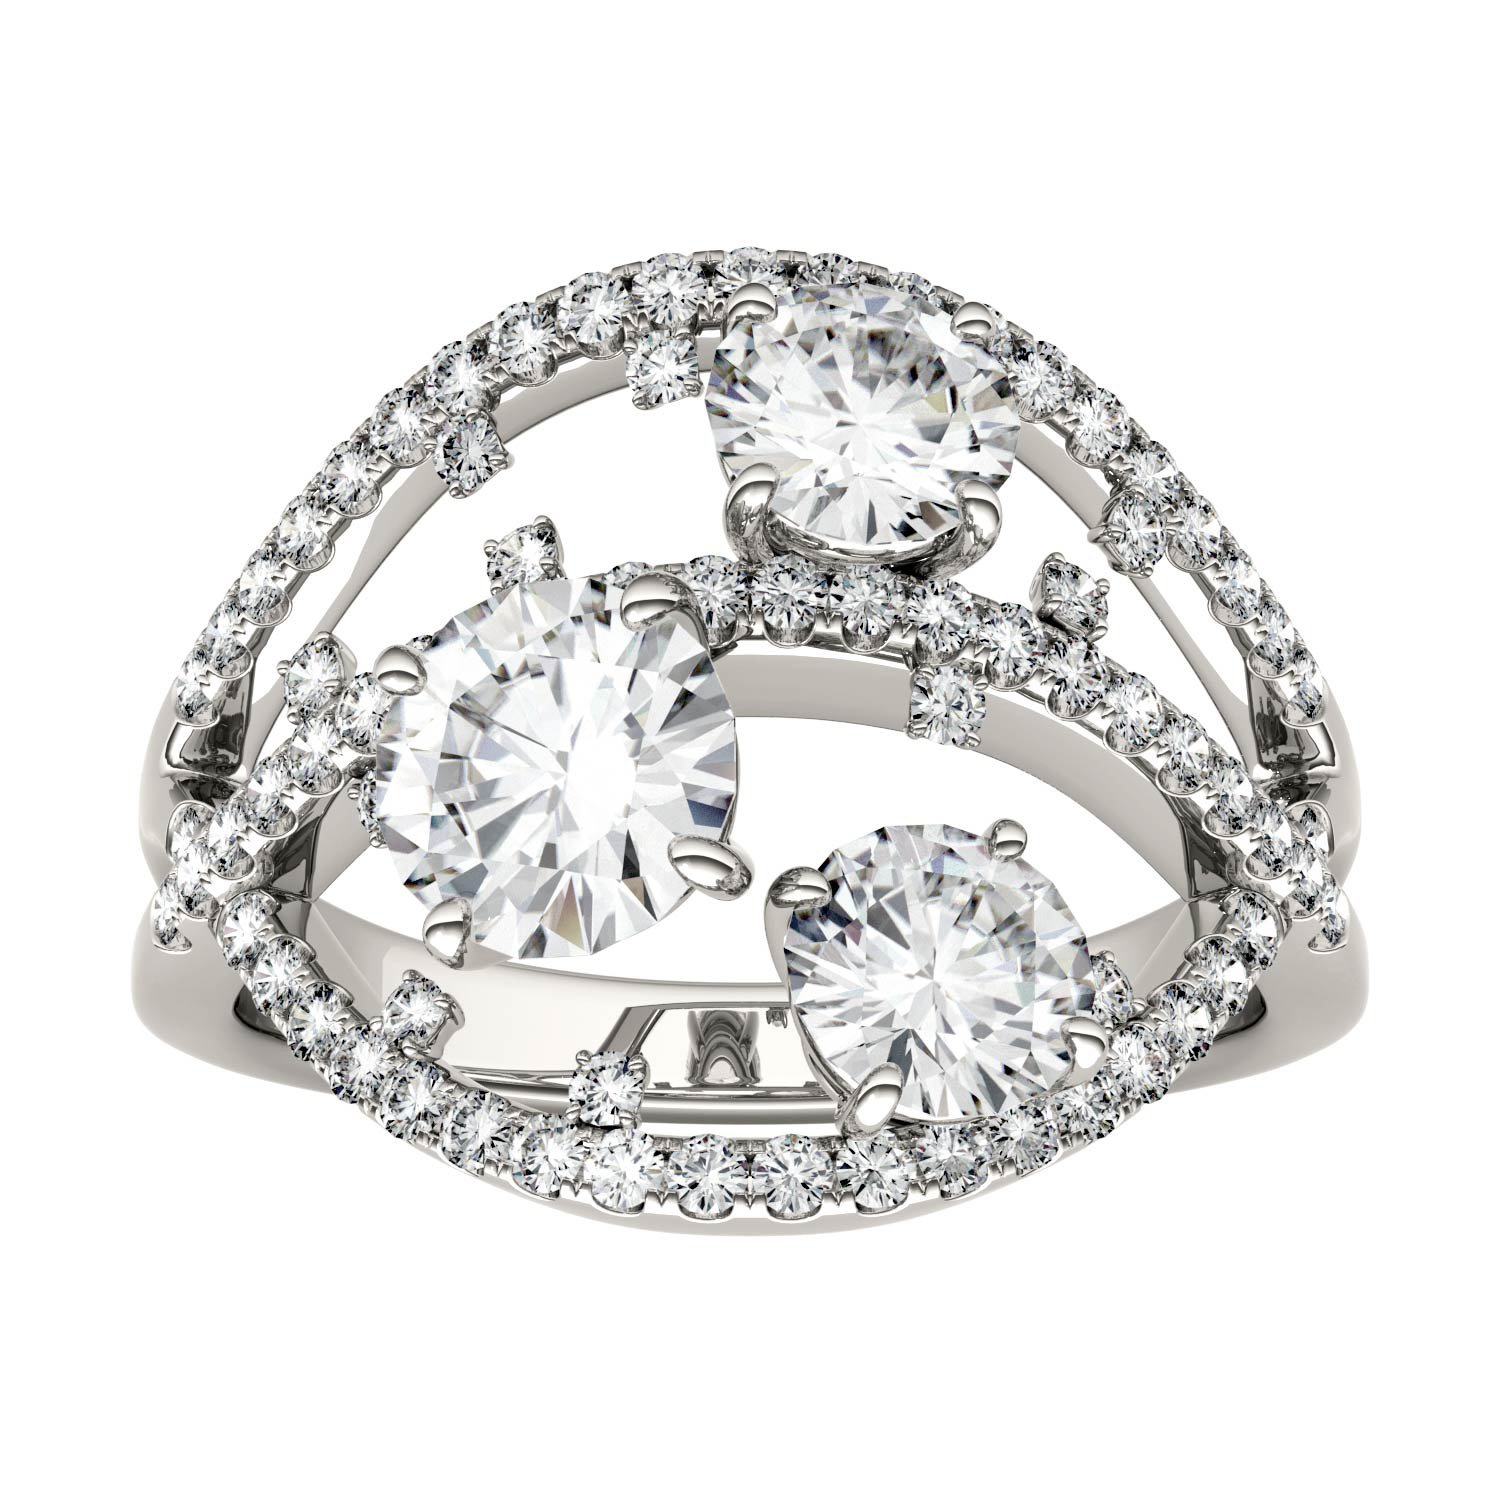 Forever Brilliant Round 6.0mm Moissanite Ring-size 9, 2.56cttw DEW By Charles & Colvard